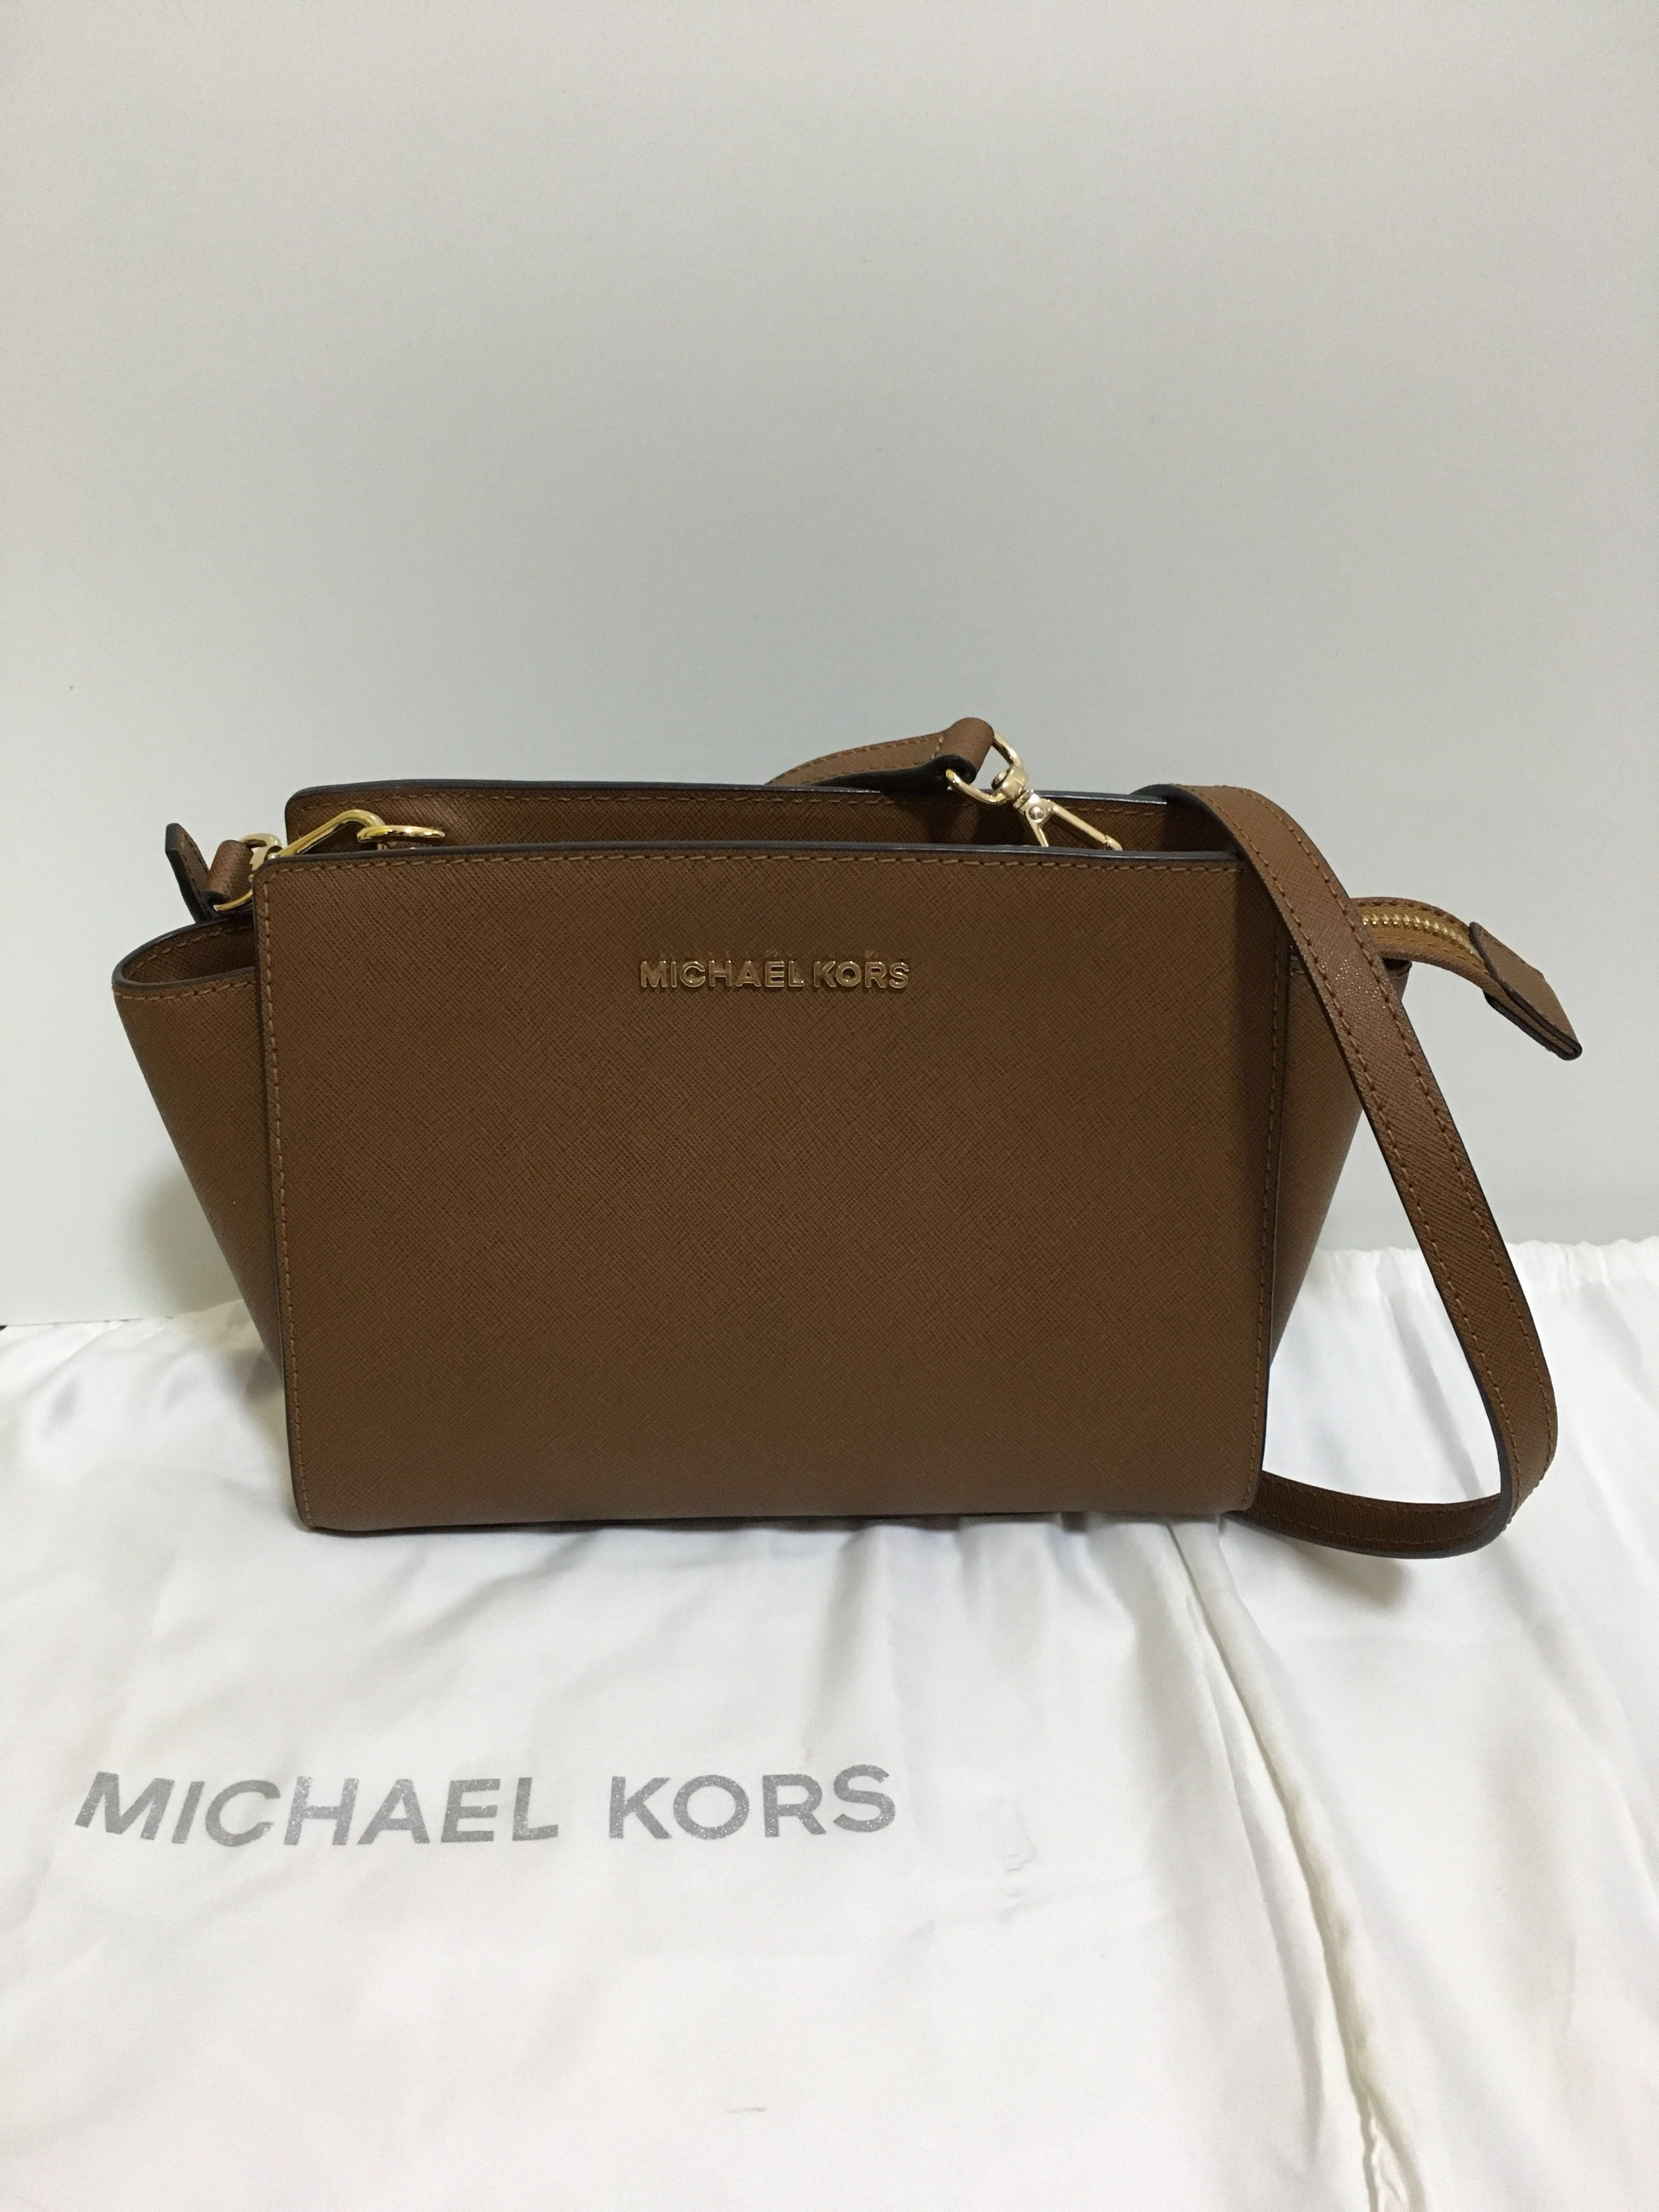 c10a30c65 Authentic Michael Kors Selma Mini Saffiano Leather Crossbody Bag, Women's  Fashion, Bags & Wallets, Sling Bags on Carousell